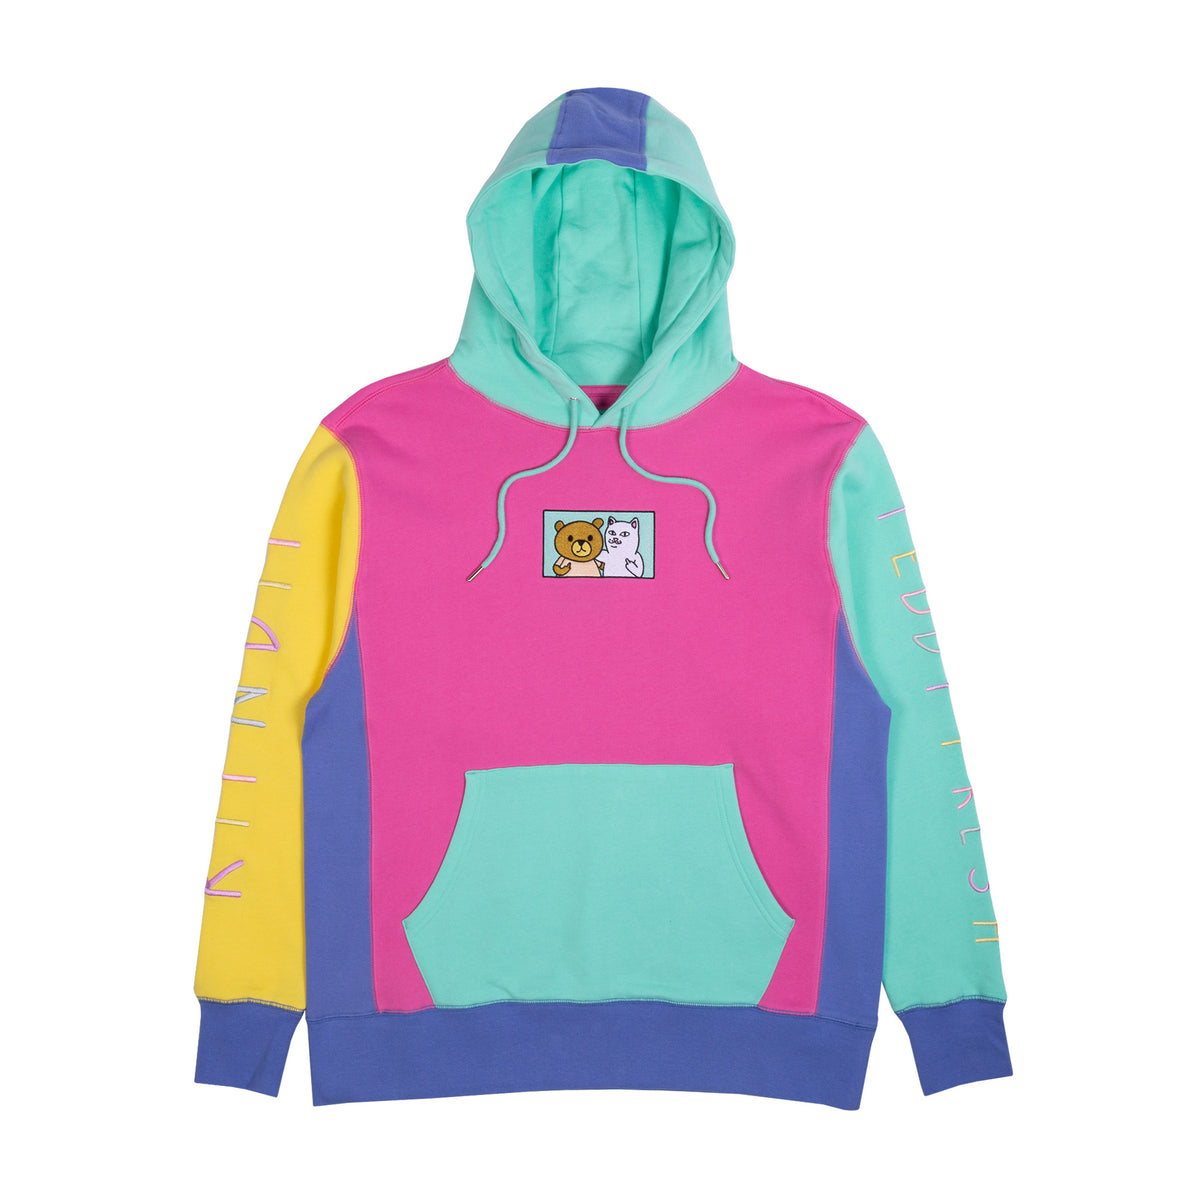 Ripndip Teddy Fresh 2.0 Color Block Hoodie (Multi) by Ripndip